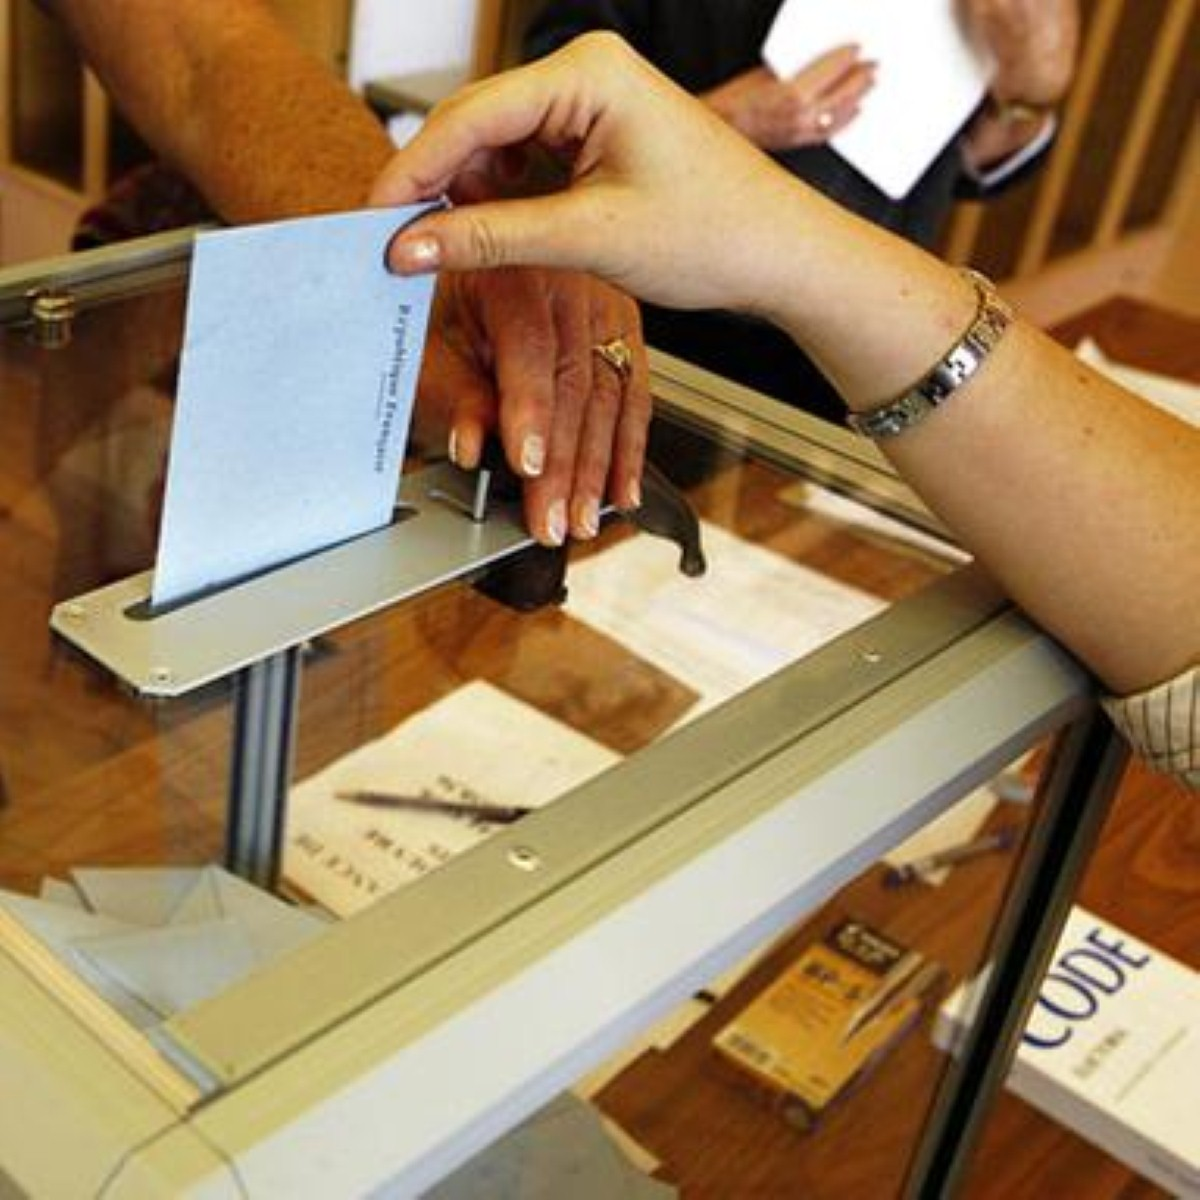 The alternative vote referendum WILL take place on May 5th